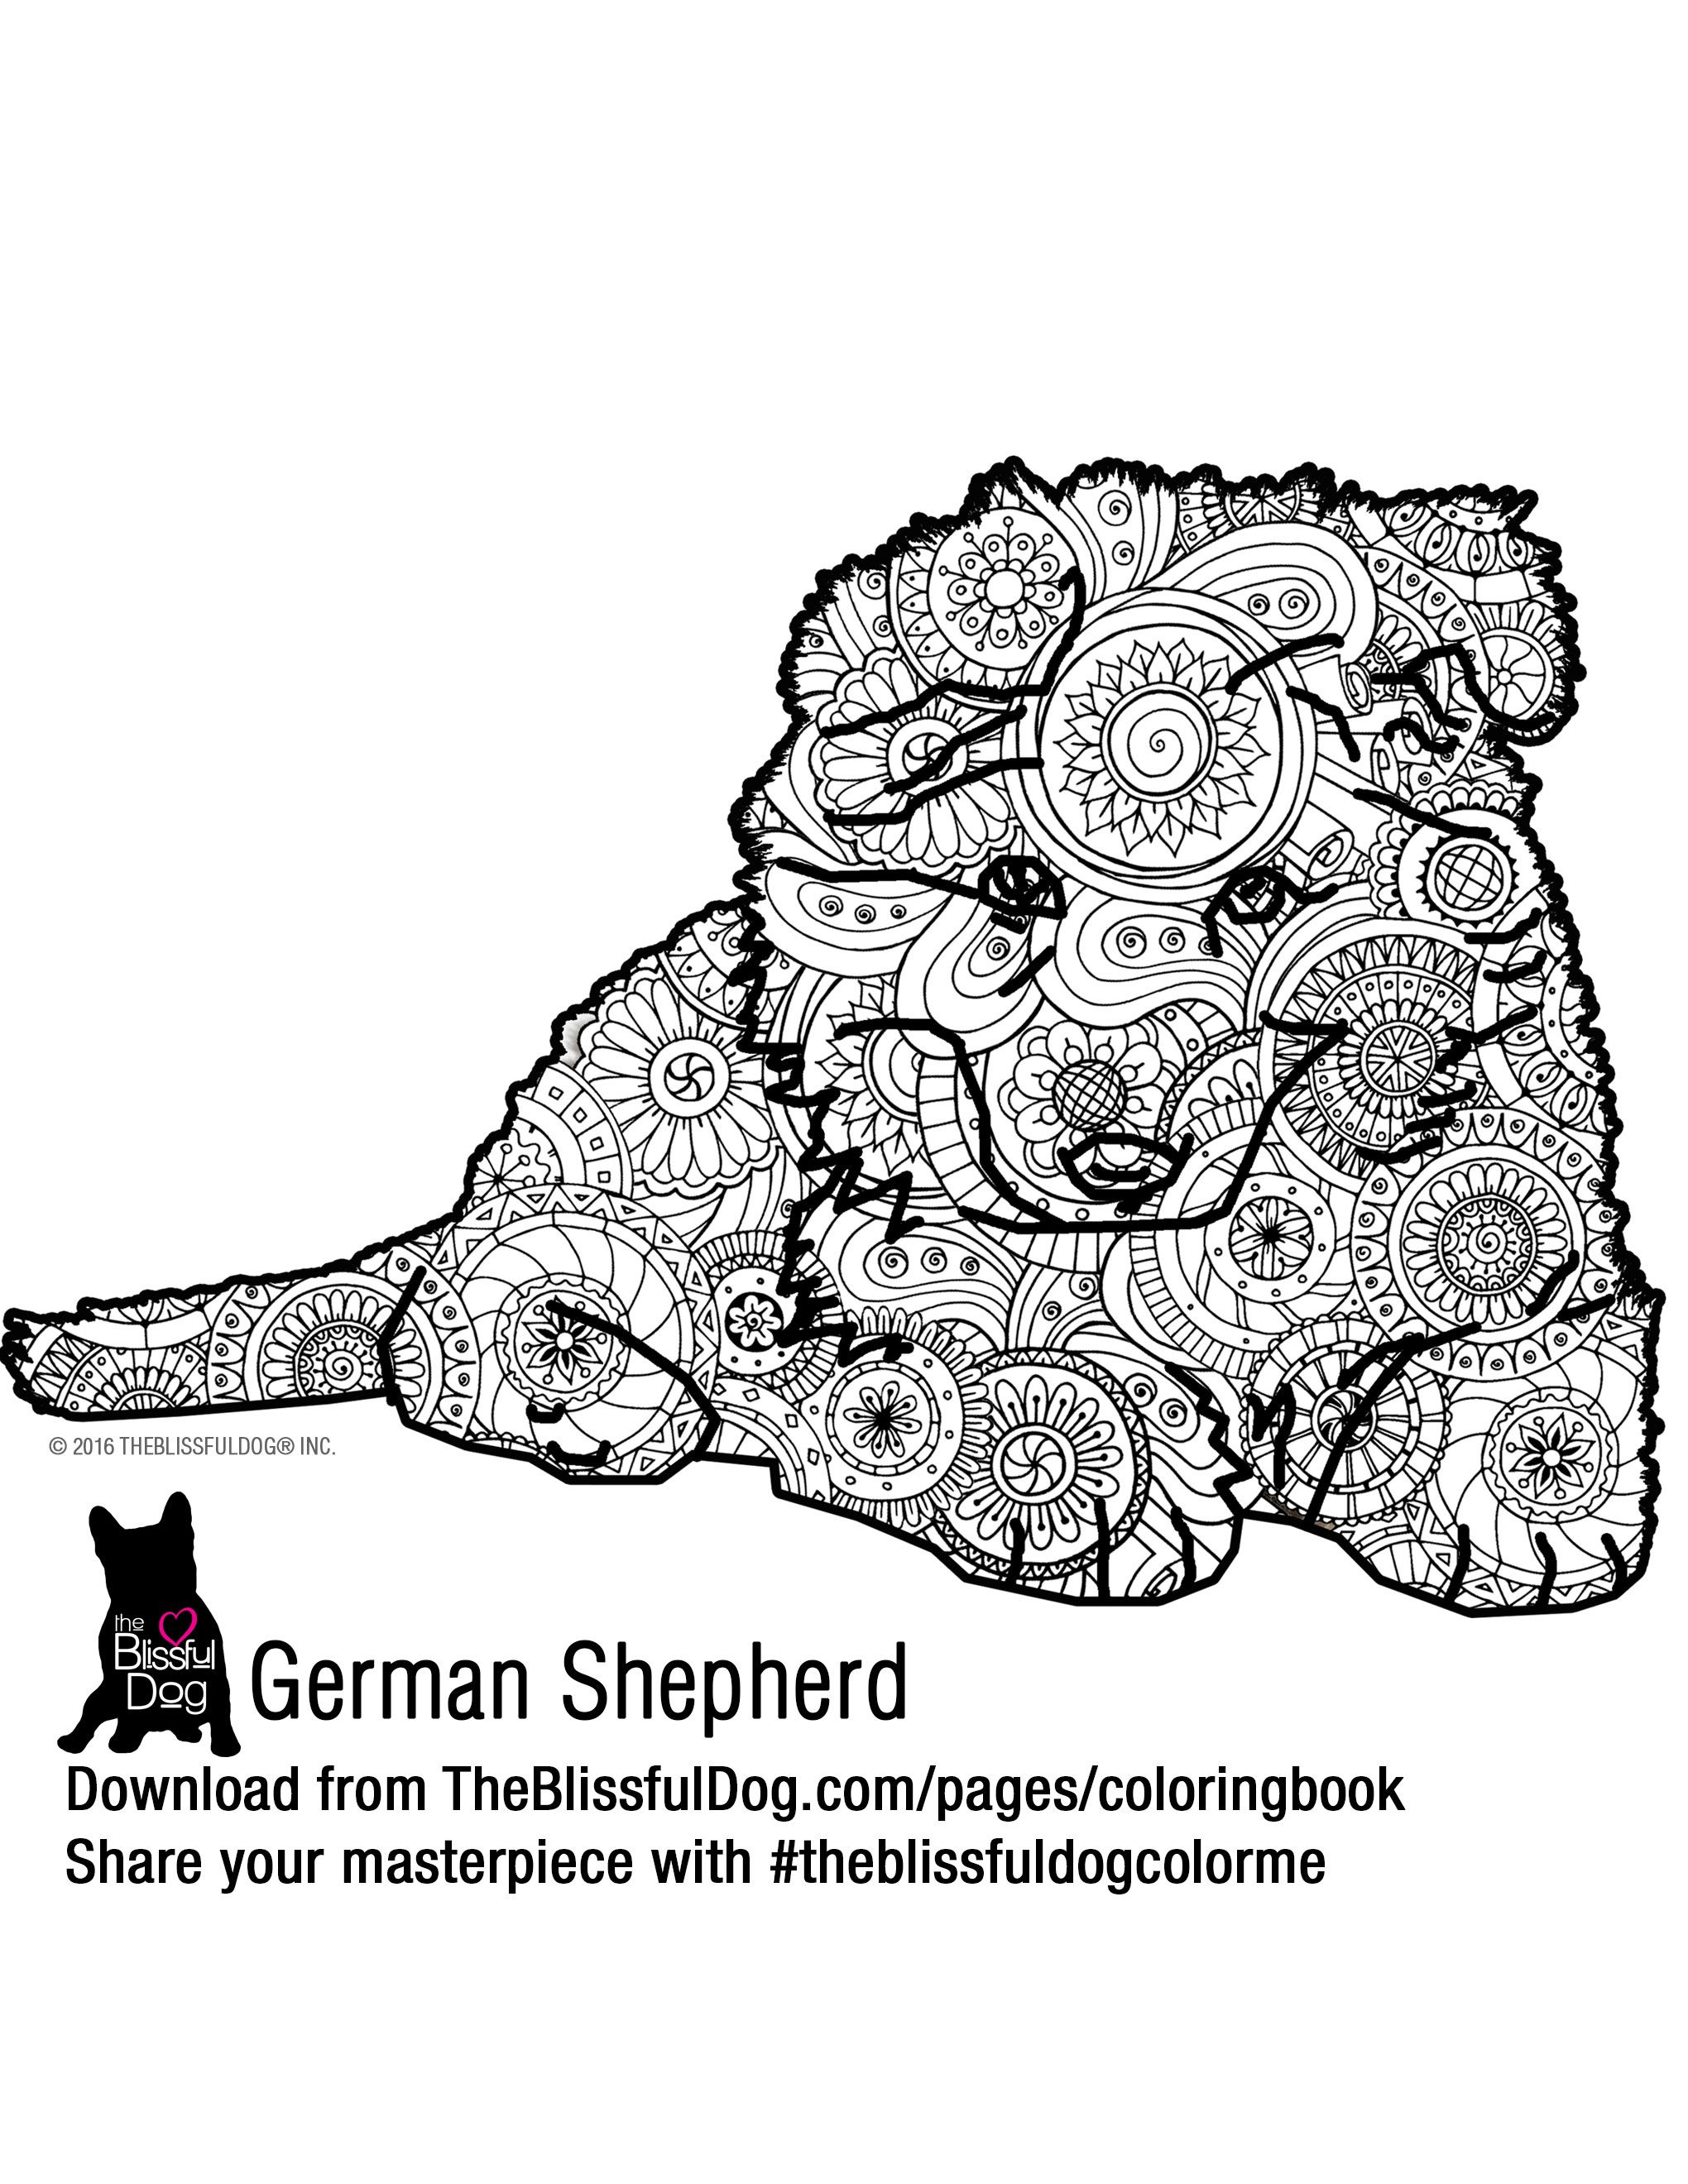 Coloring Book | Coloring books, German shepherd puppies and Shepherd ...